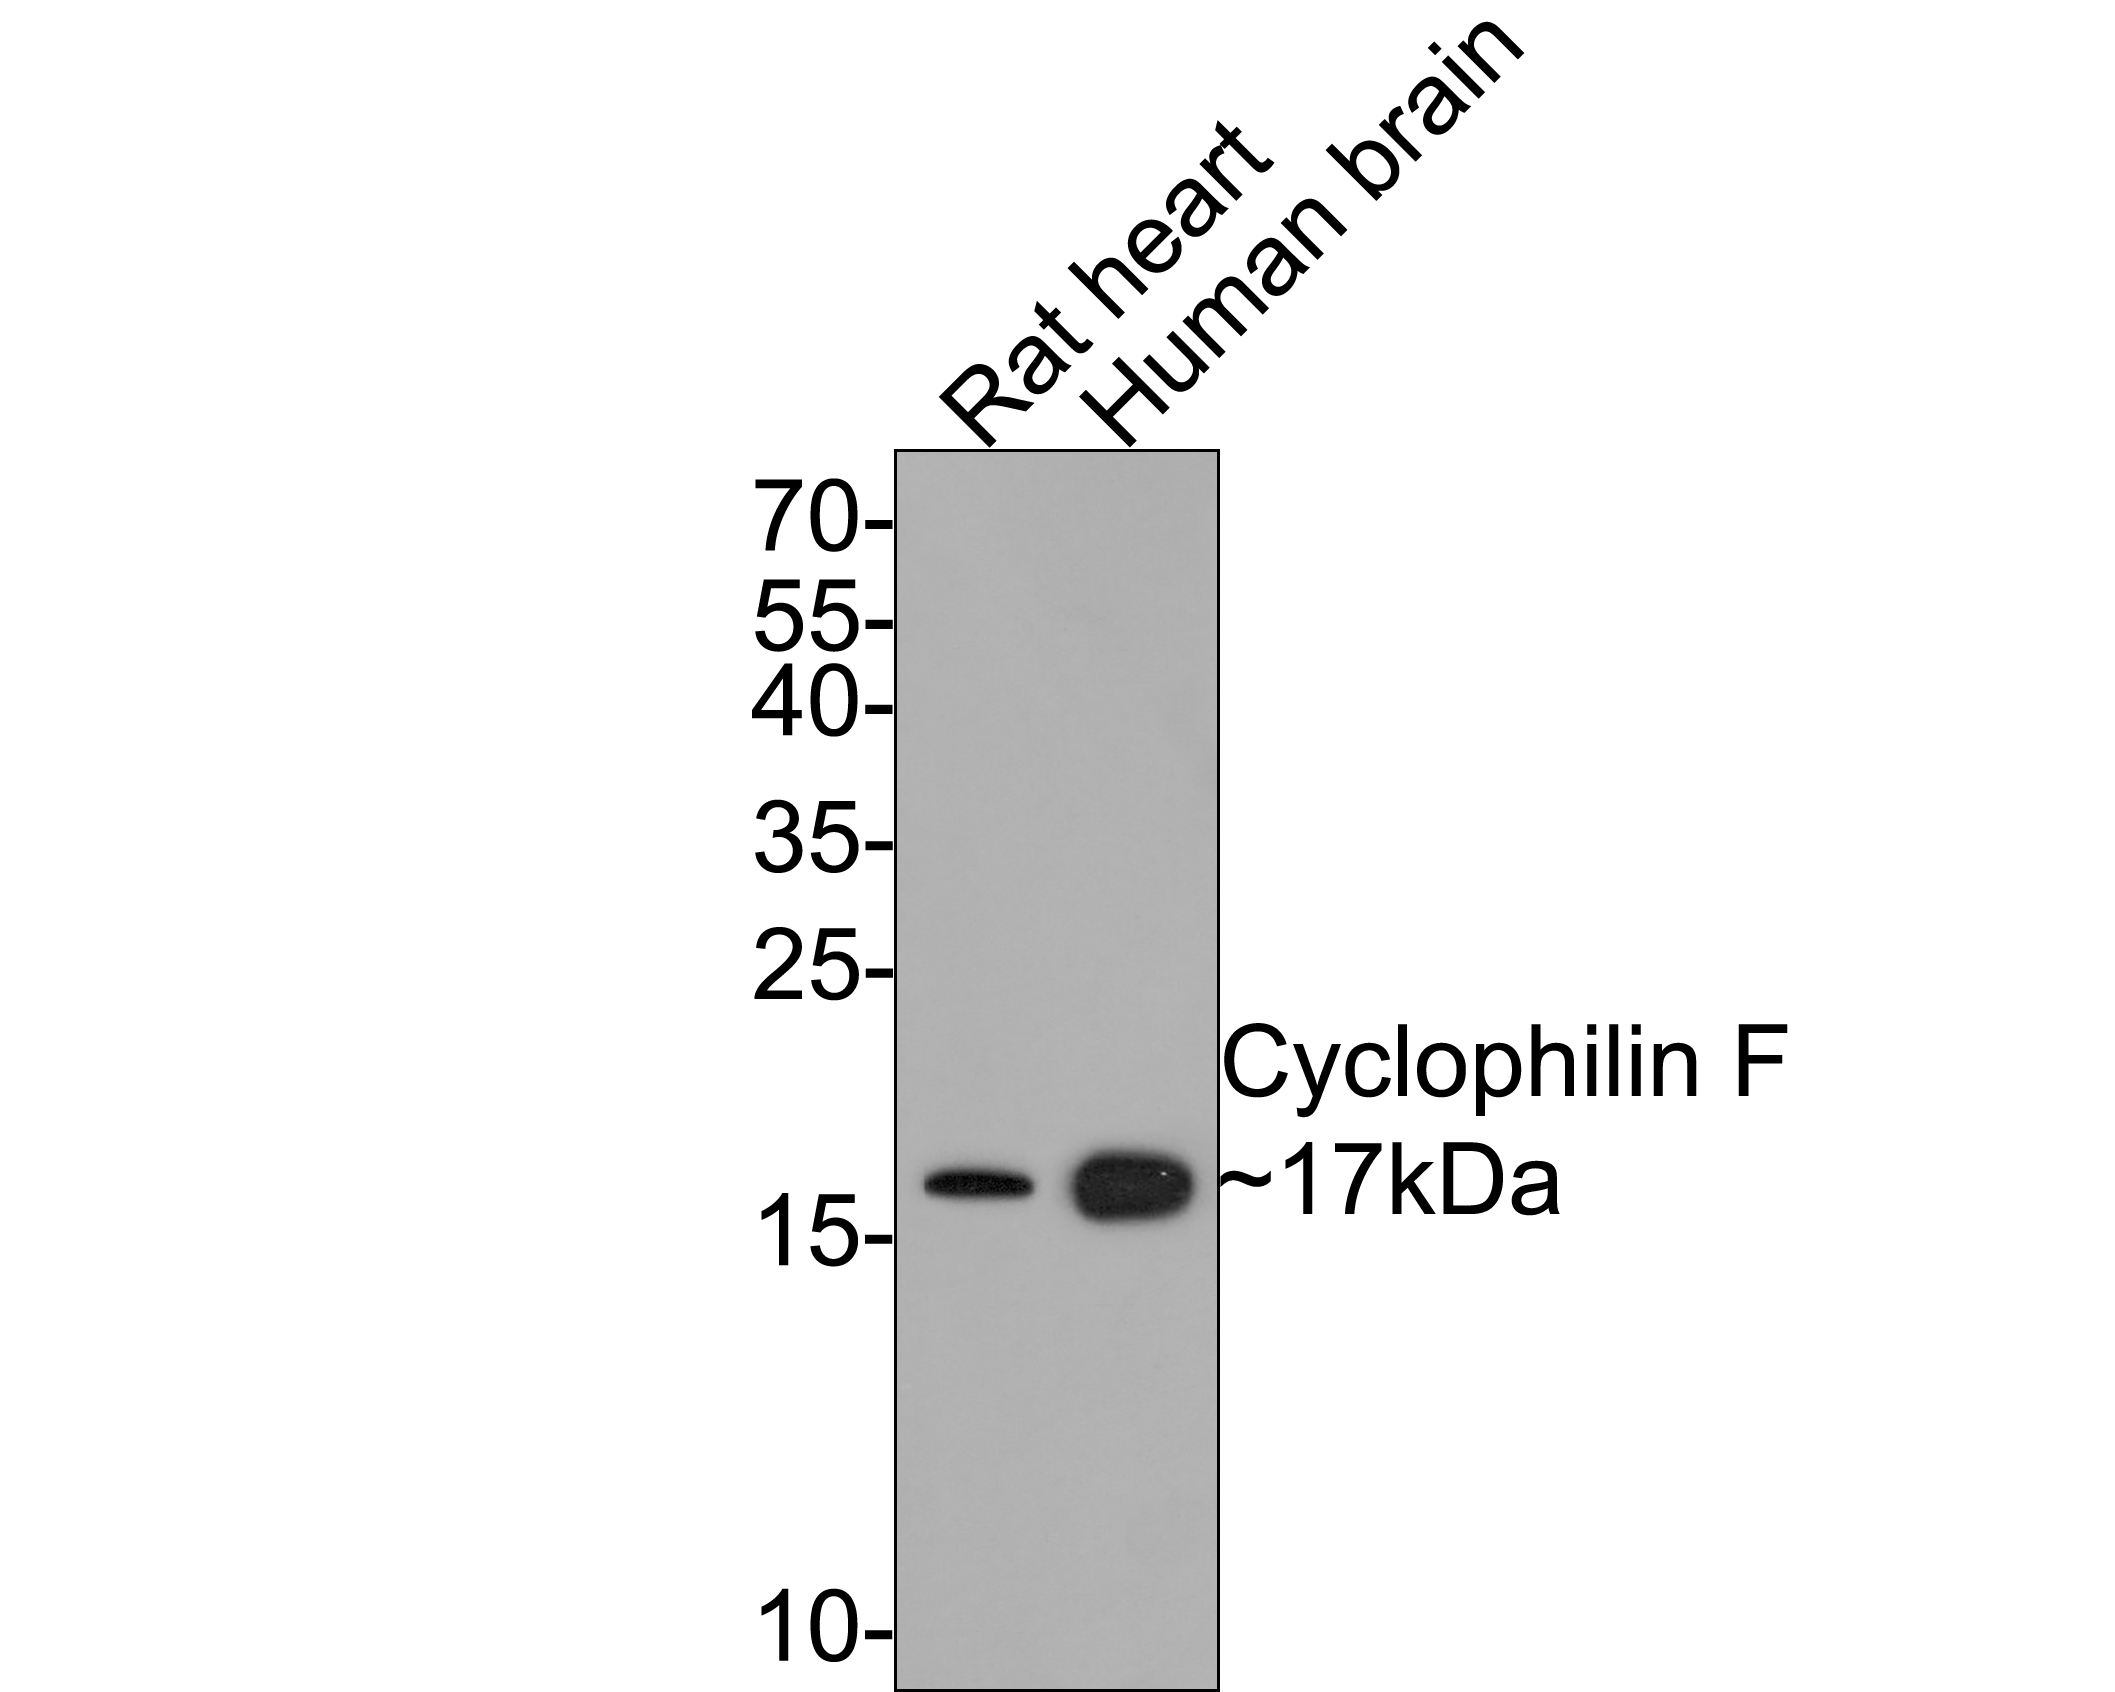 Western blot analysis of Cyclophilin F on human heart (1) and human brain (2) tissue lysate using anti-Cyclophilin F antibody at 1/1,000 dilution.